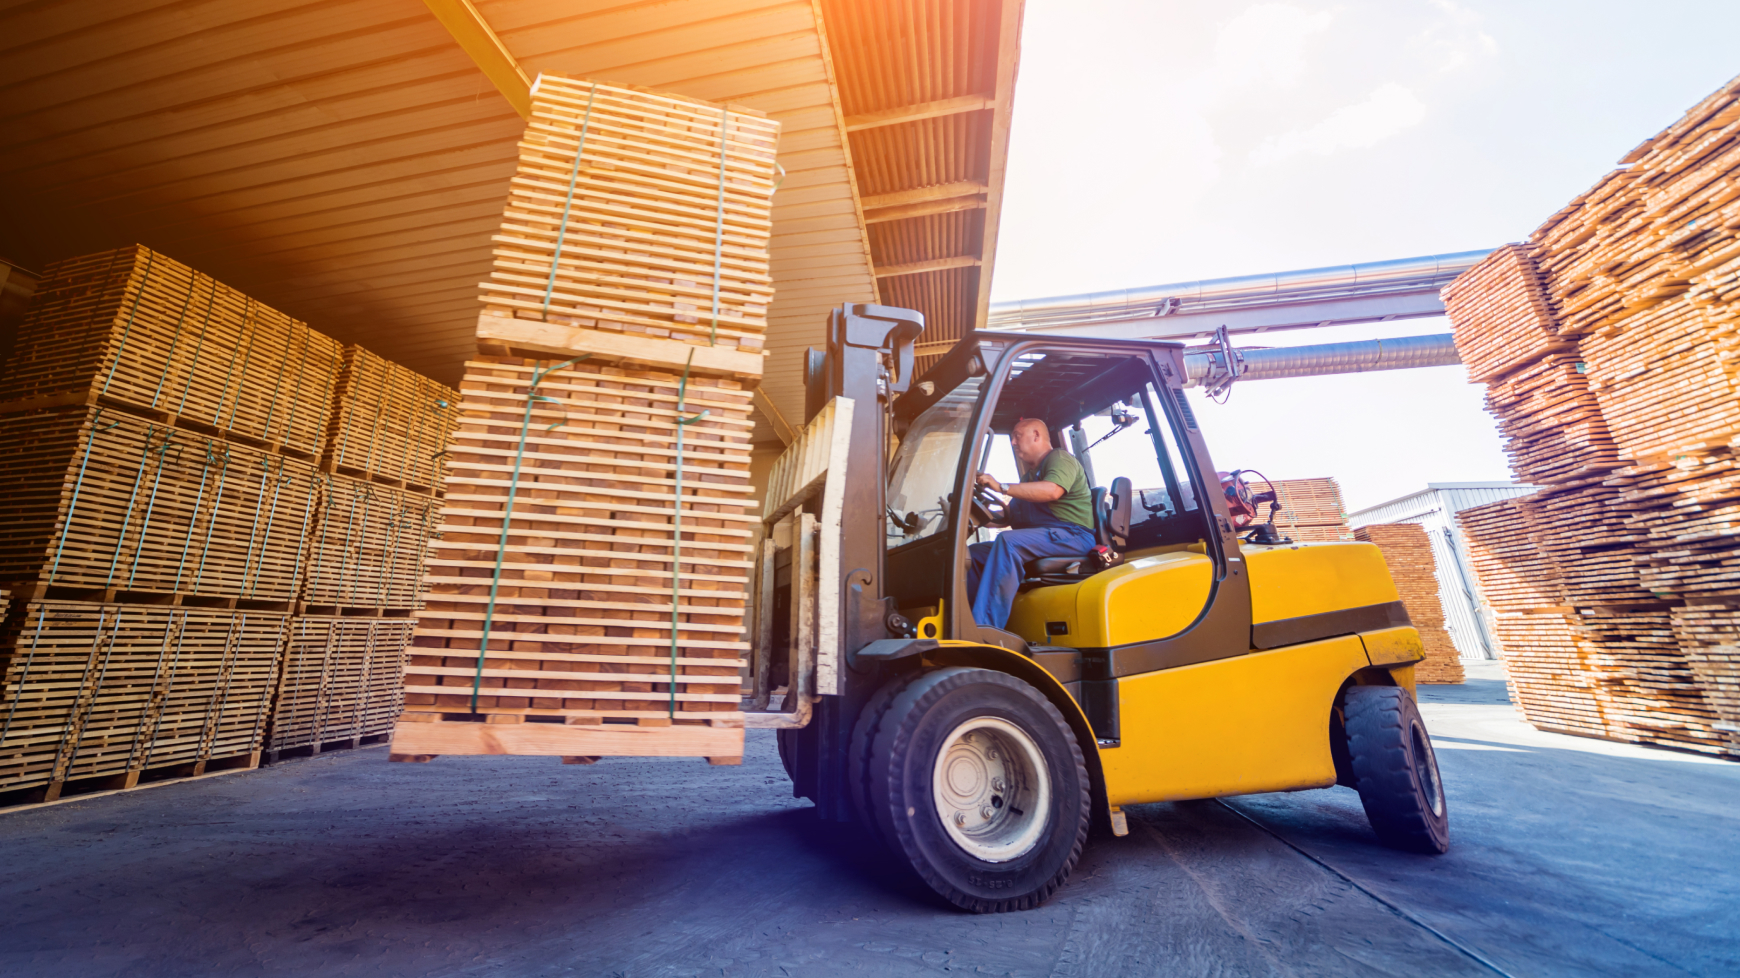 A Forklift Driving and Stacking Pallets in a Warehouse